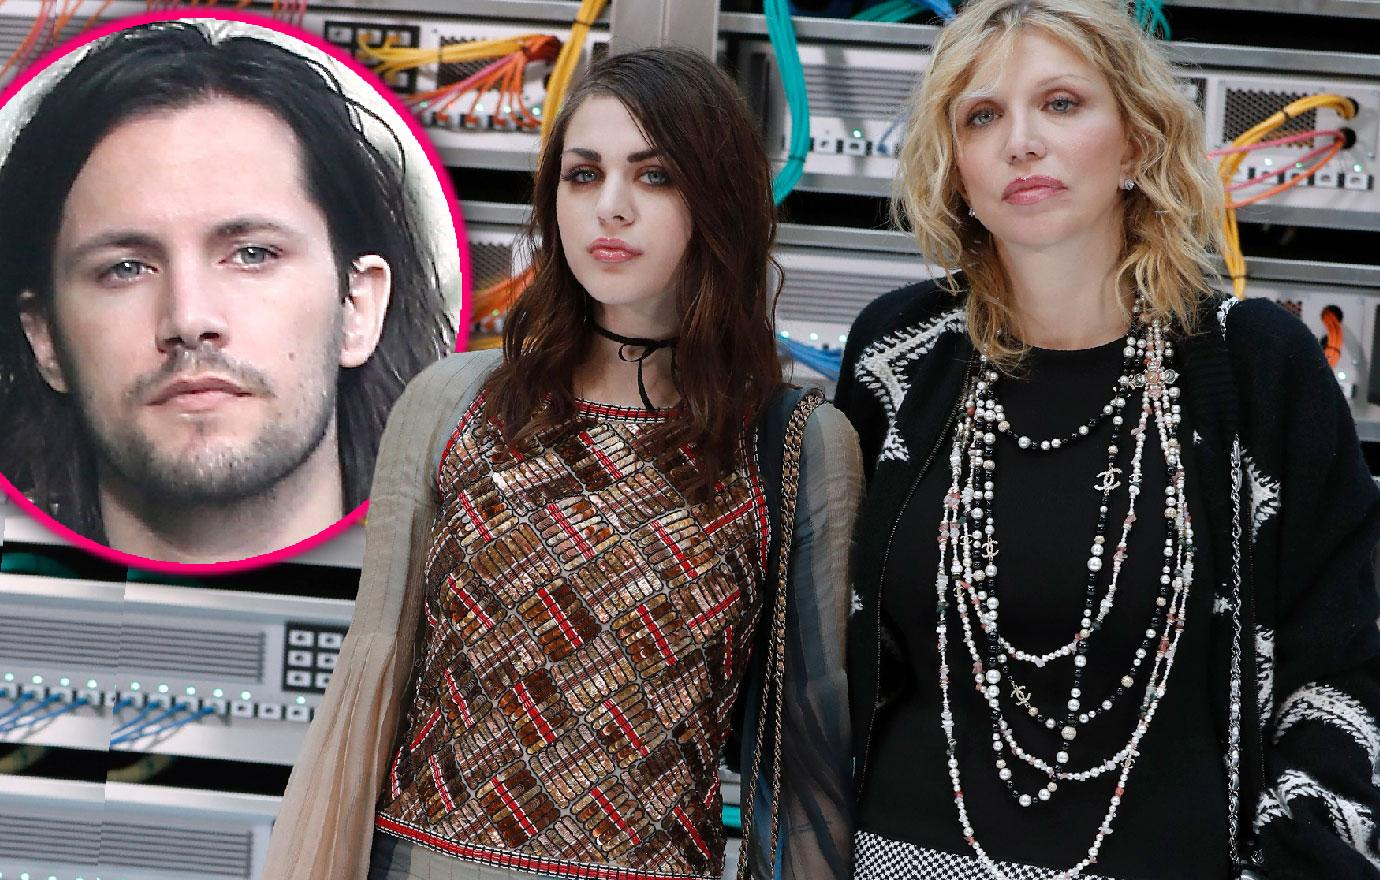 Courtney Love To Testify In Frances Bean Divorce Battle